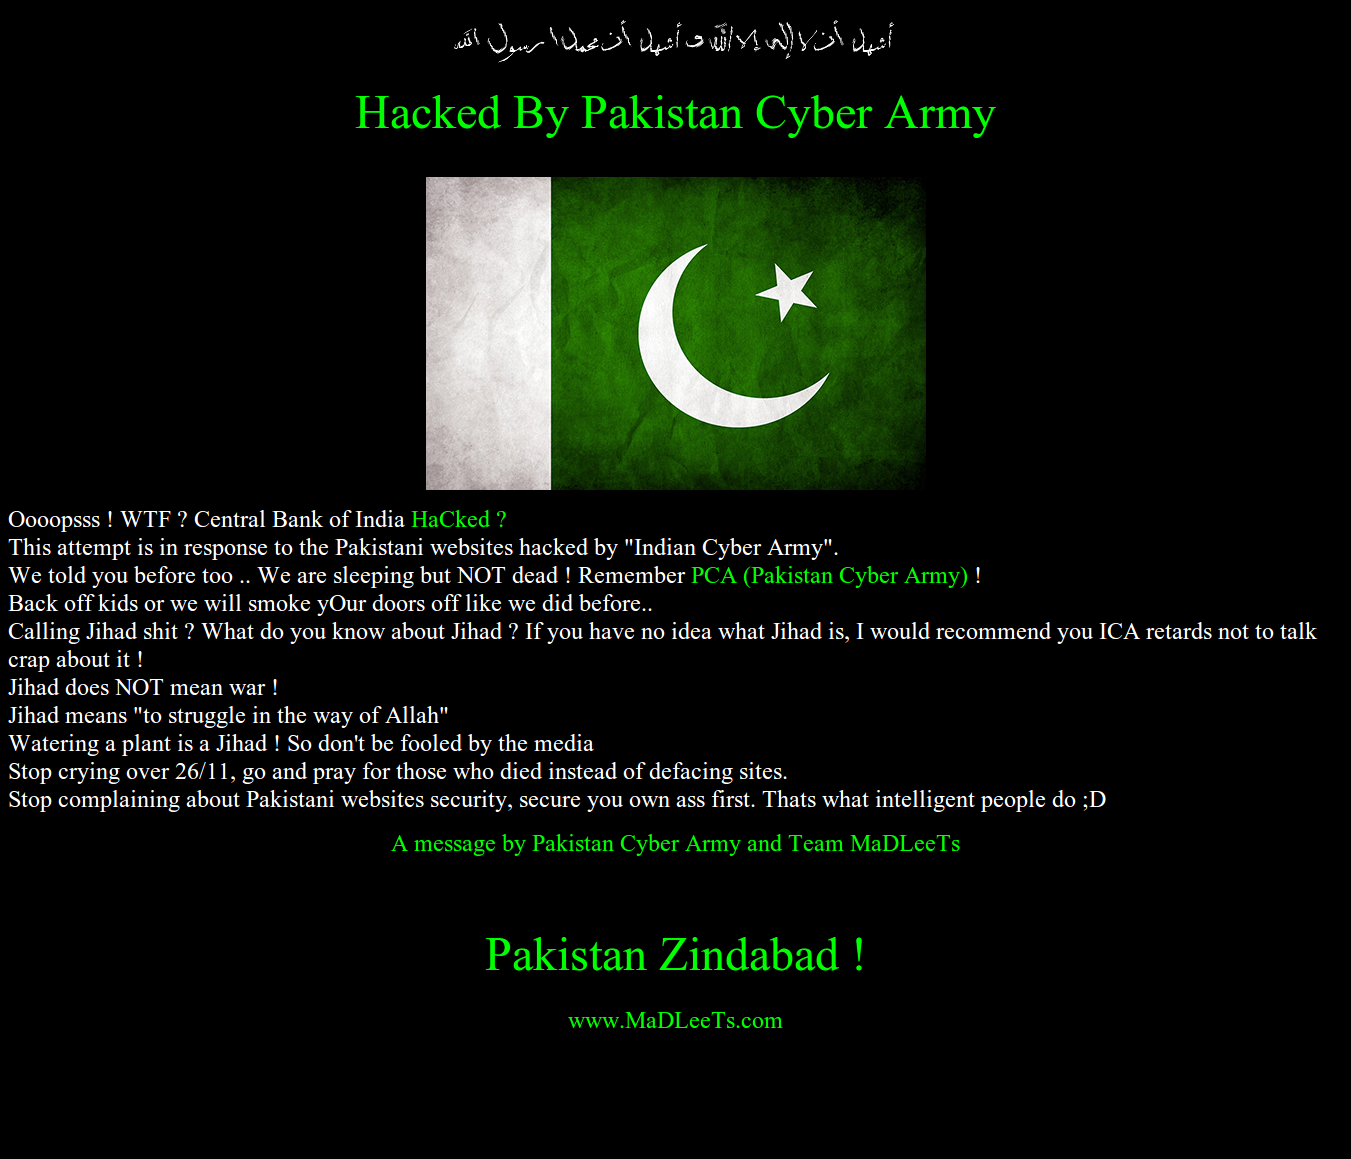 Central Bank Of India Hacked By Pakistan Cyber Army And